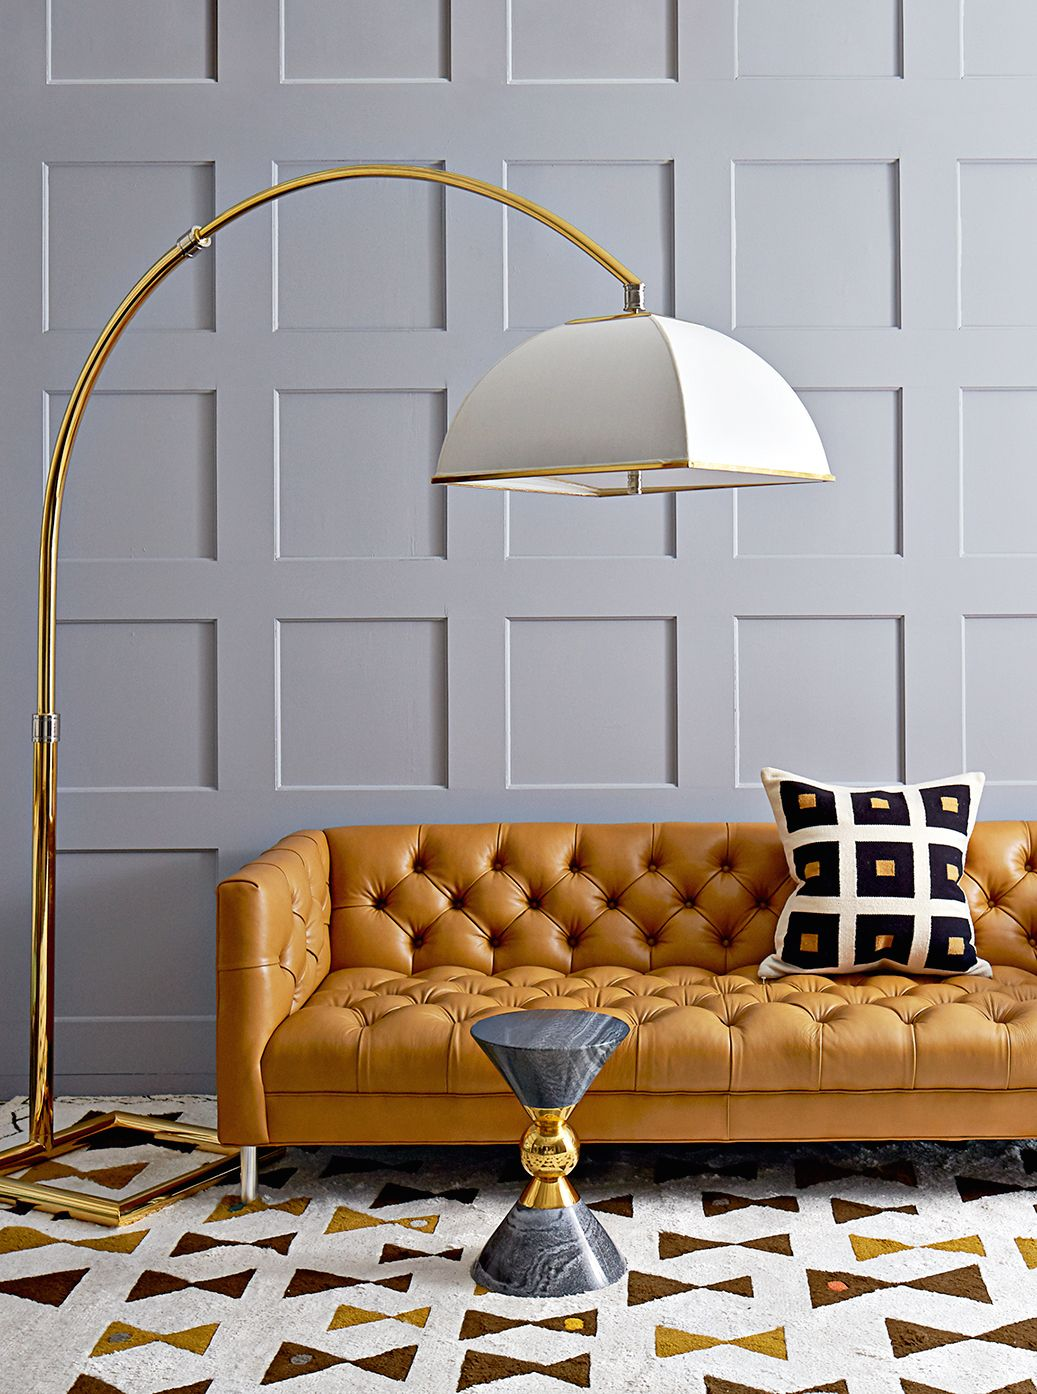 living room ideas with leather furniture%0A Grey panelled walls and tan leather sofa  Find this Pin and more on Living  Rooms